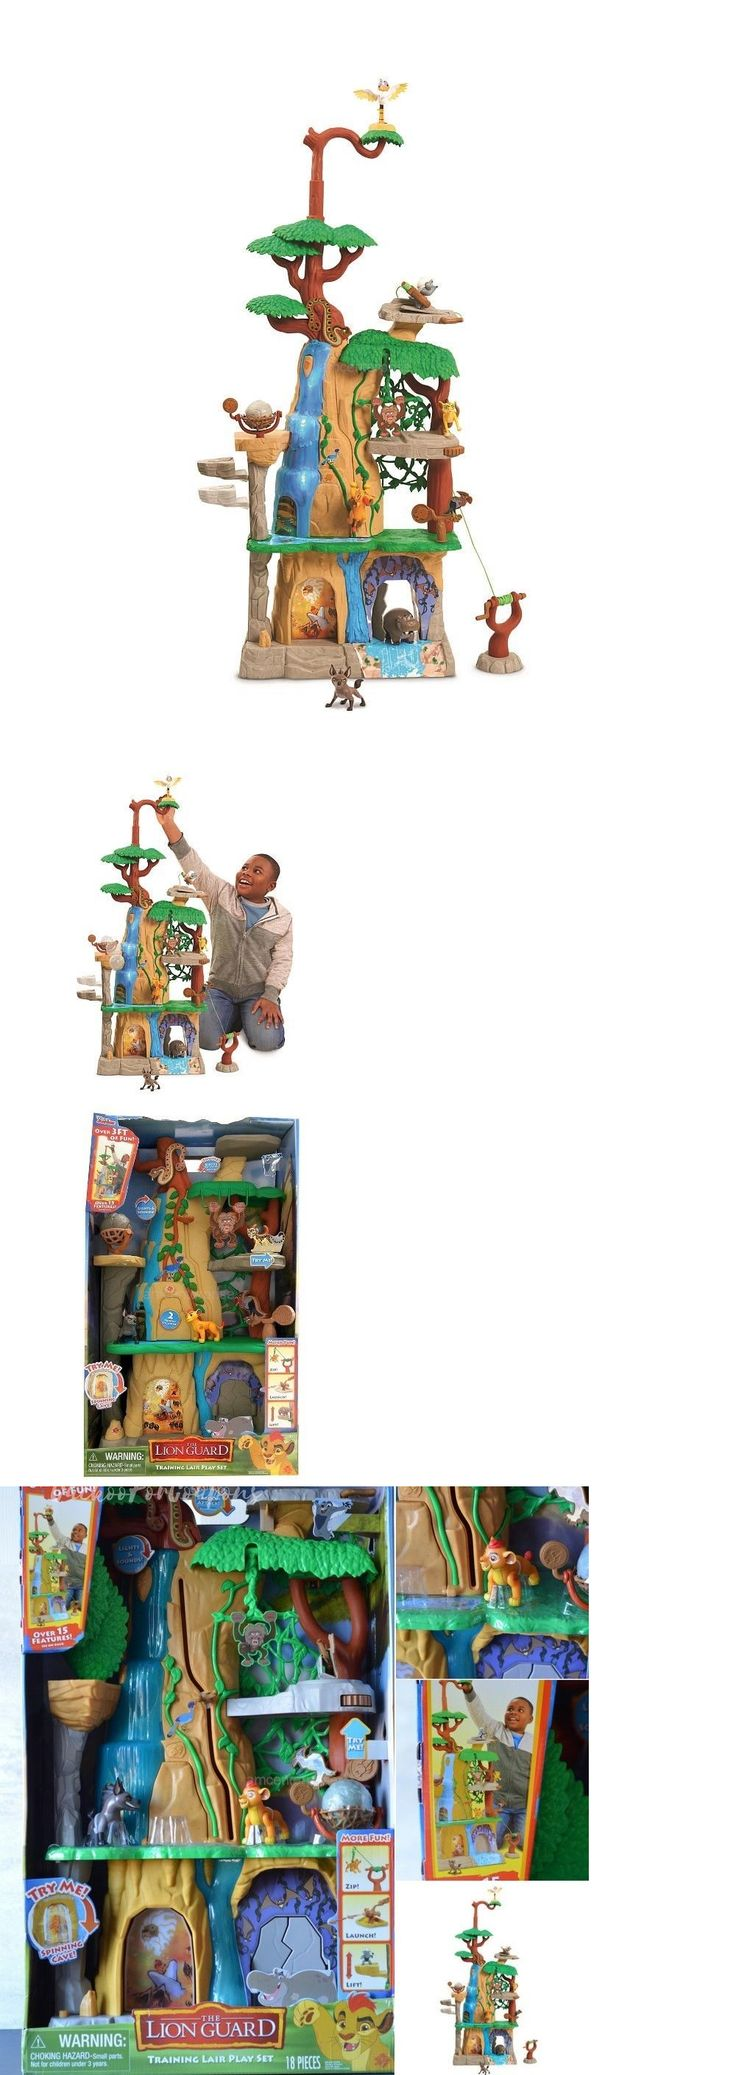 Lion King 44037: The Disney Lion Guard Training Lair Play Set 3 Foot Tall 15 Features Zipline -> BUY IT NOW ONLY: $63.99 on eBay!